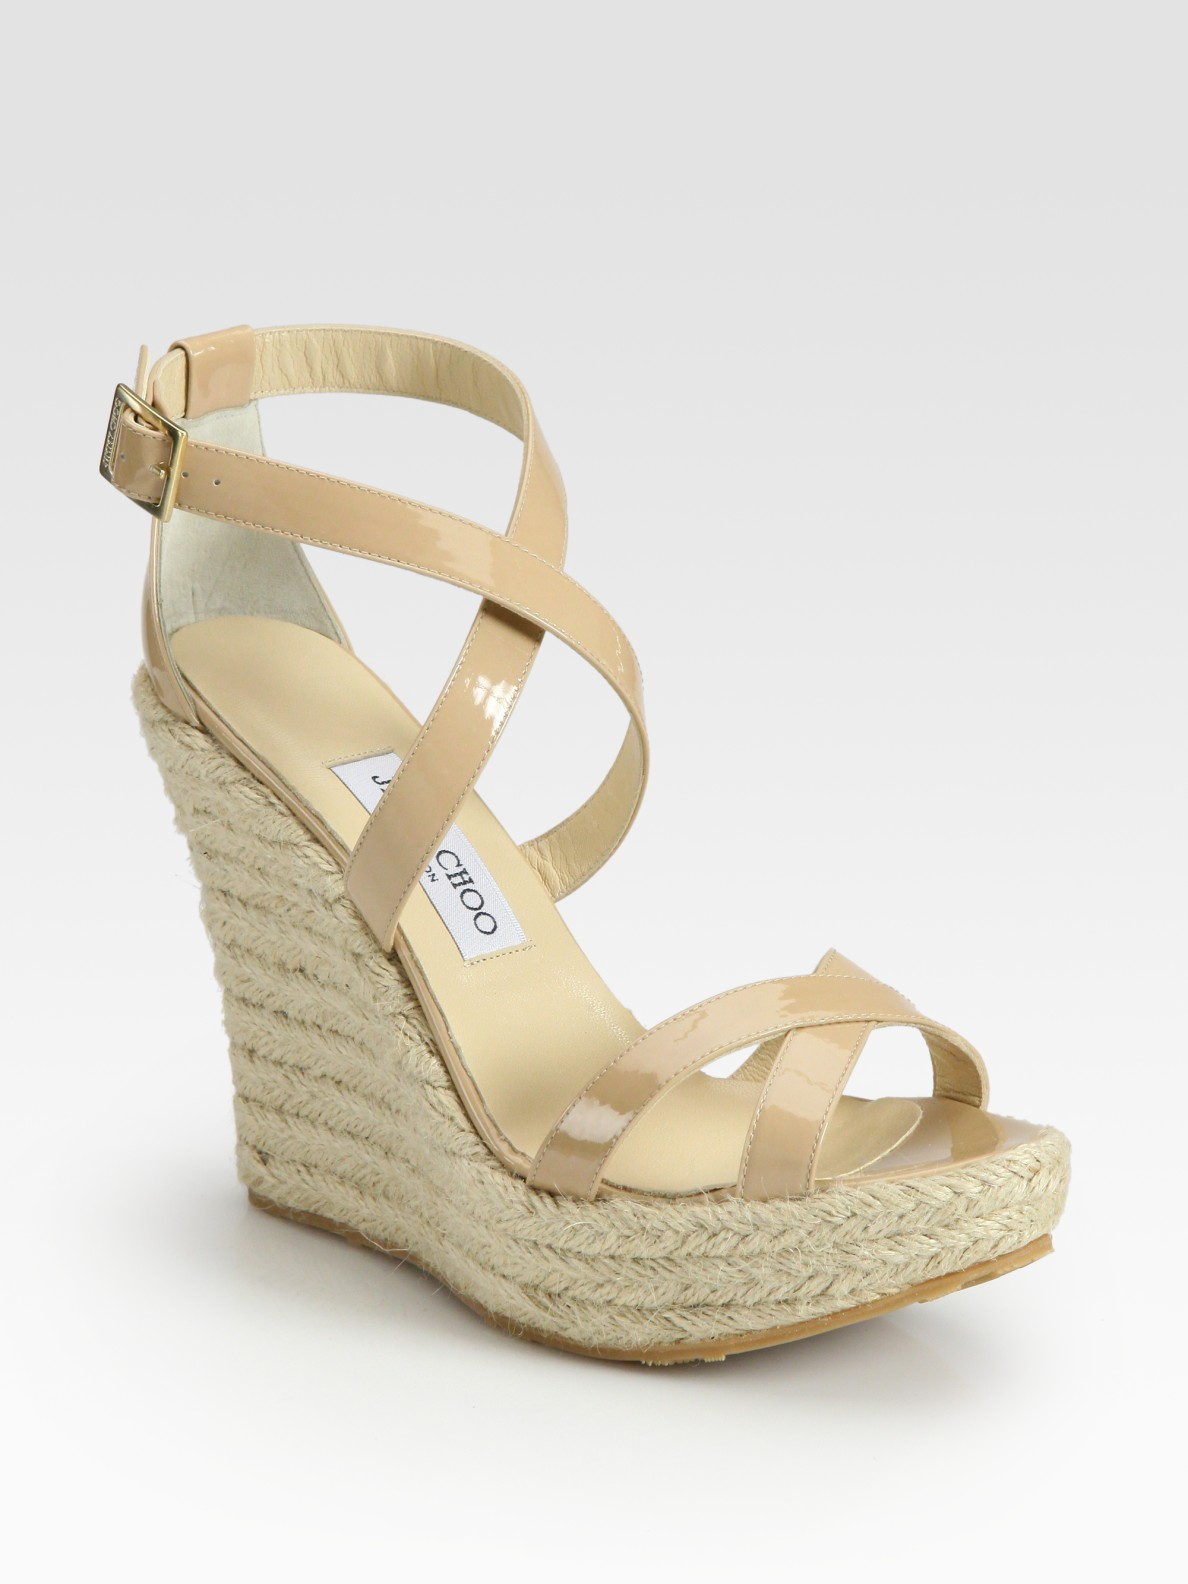 ac801585a23e ... discount code for lyst jimmy choo porto patent leather espadrille wedge  sandals in 8c238 87e31